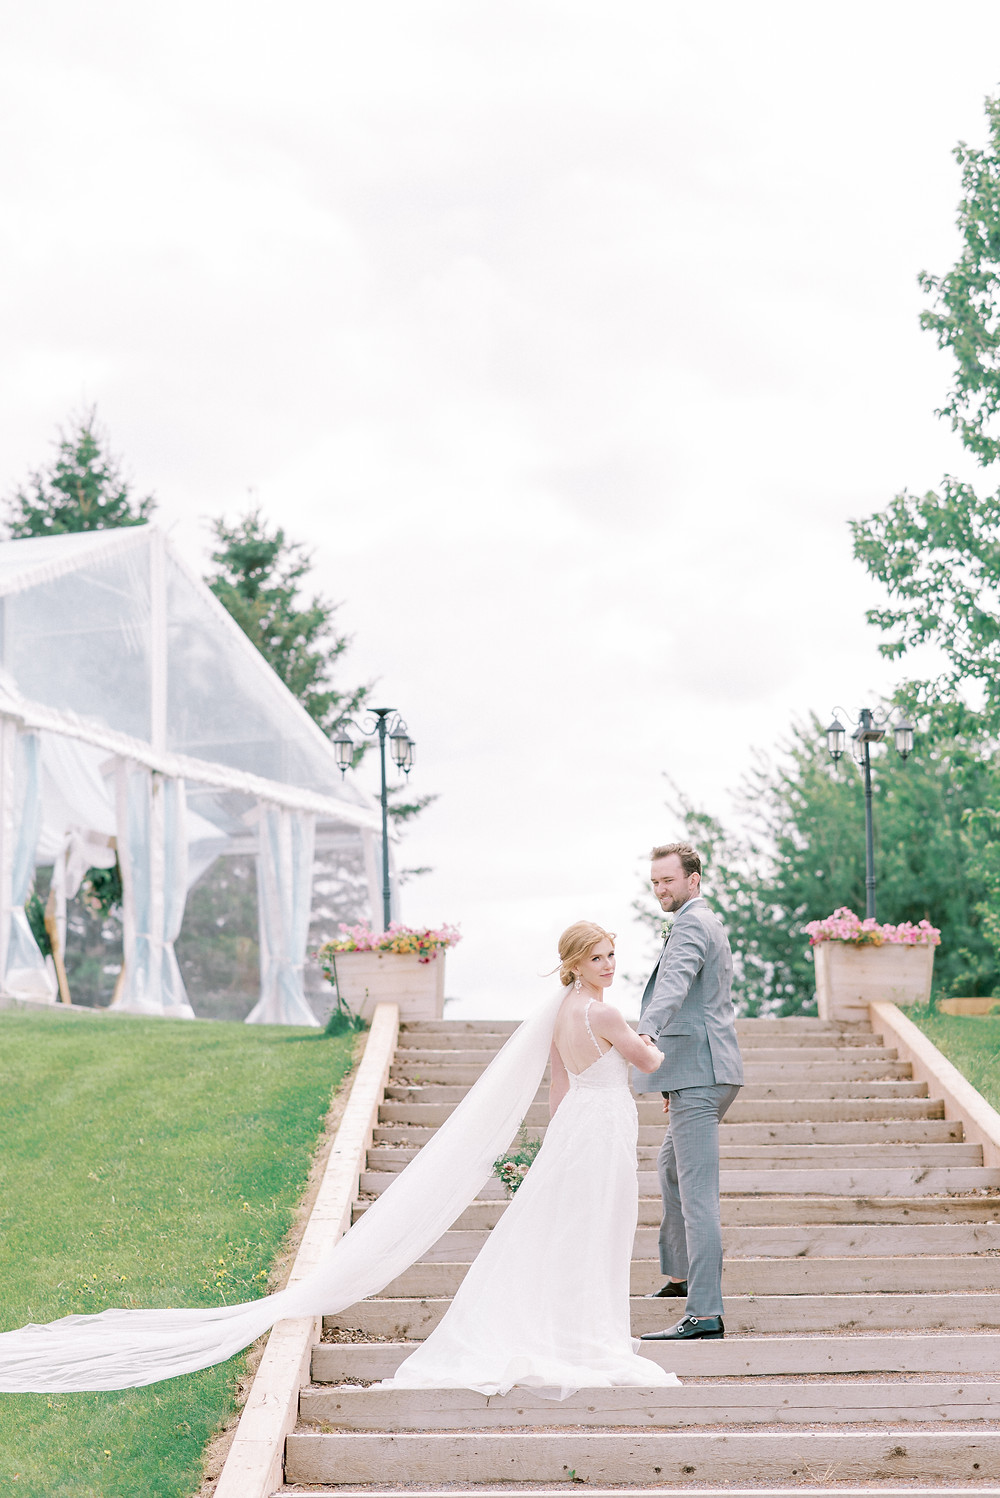 wildrose weddings and workshops, jenny jean photography, tale of tulle, fine art weddings, fine art photographer alberta, alberta weddings, pine and pond, vintage wedding inspo, the notebook themed wedding, wedding photos alberta, canadian wedding magazine, fine art magazine, film photography